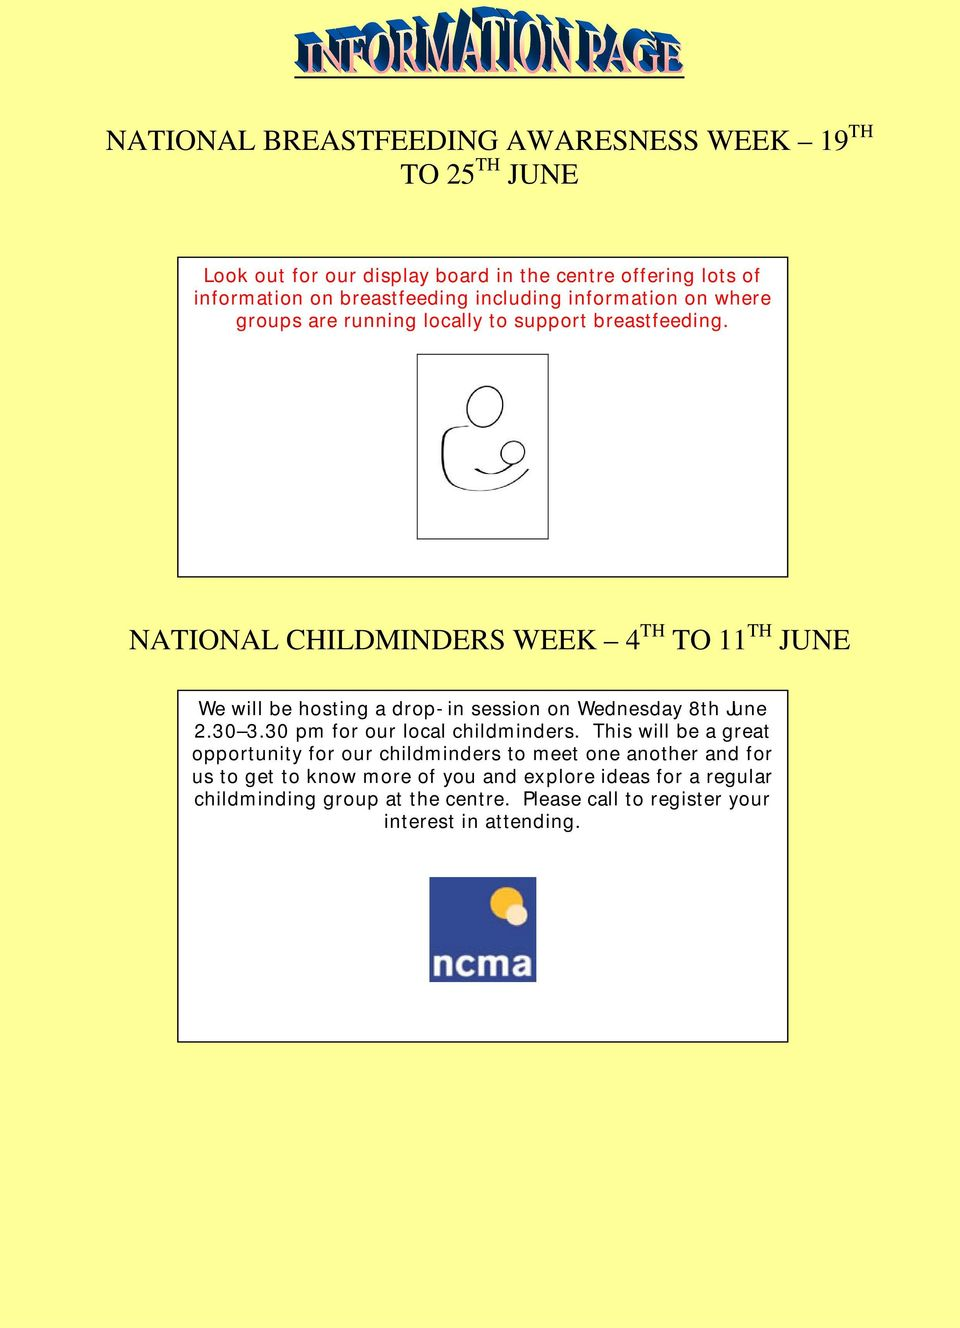 NATIONAL CHILDMINDERS WEEK 4 TH TO 11 TH JUNE We will be hosting a drop-in session on Wednesday 8th June 2.30 3.30 pm for our local childminders.